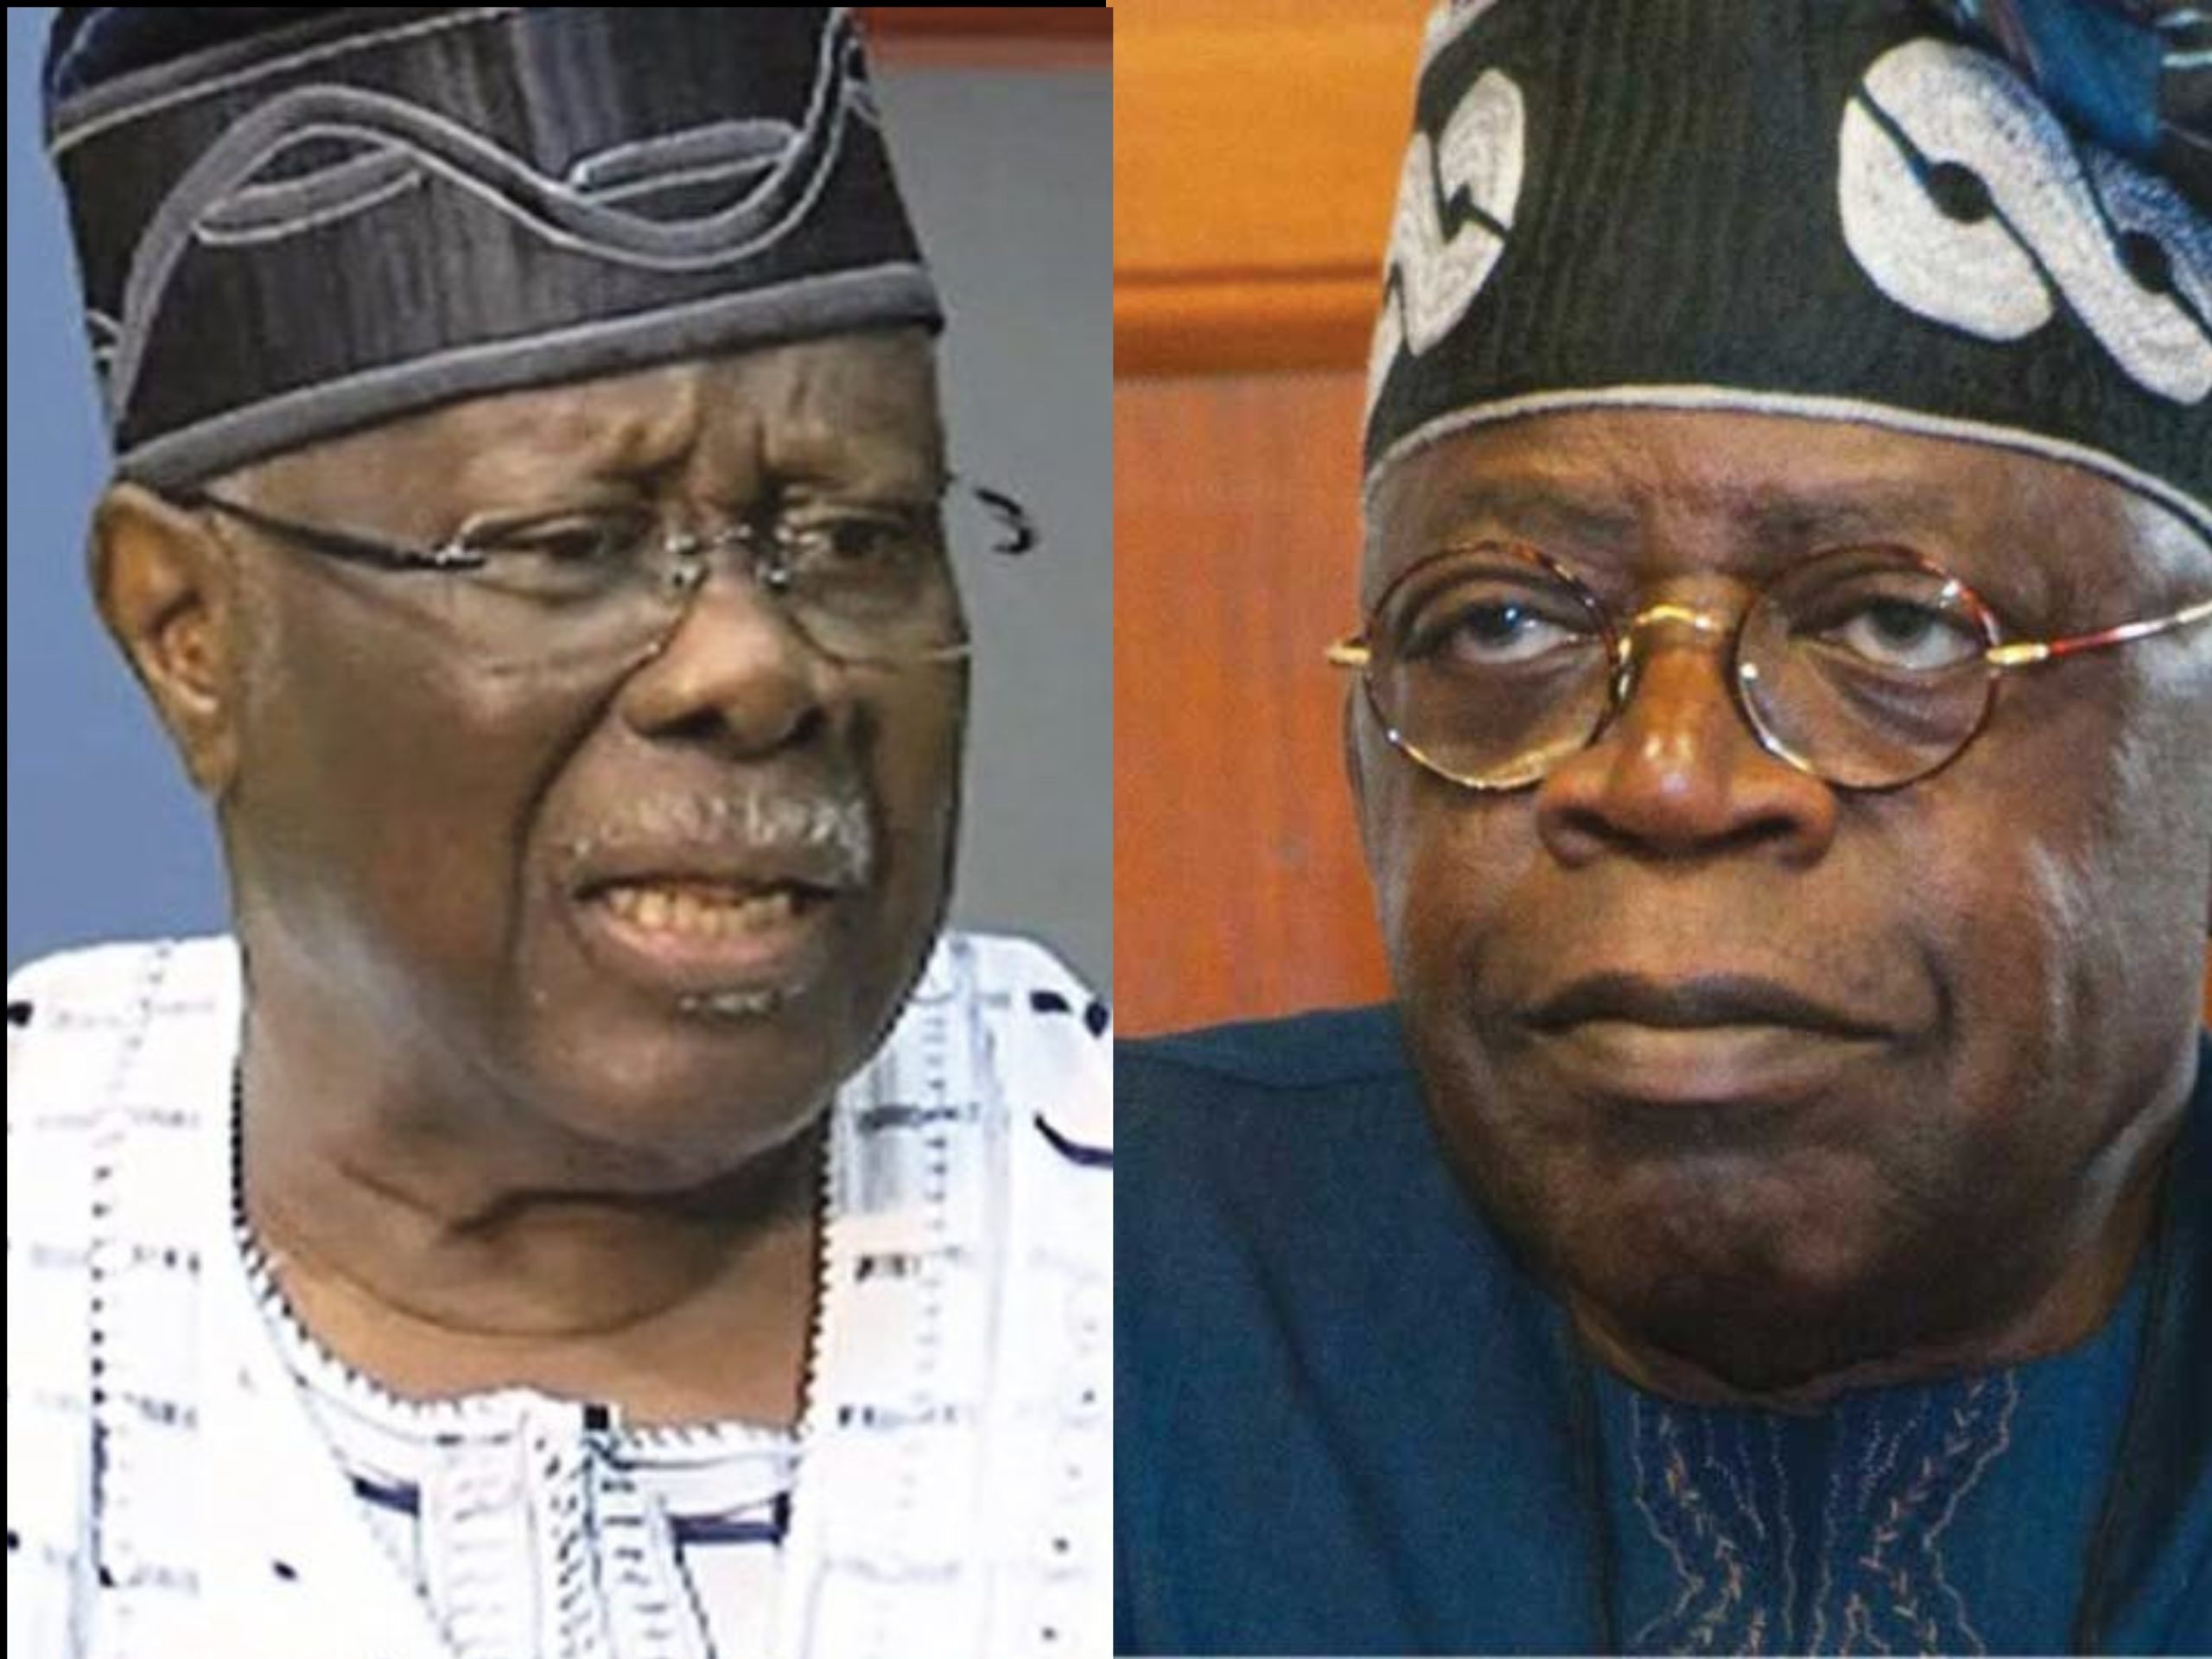 Tinubu Takes N9bn From Lagos Account Monthy - Bode George Alleges